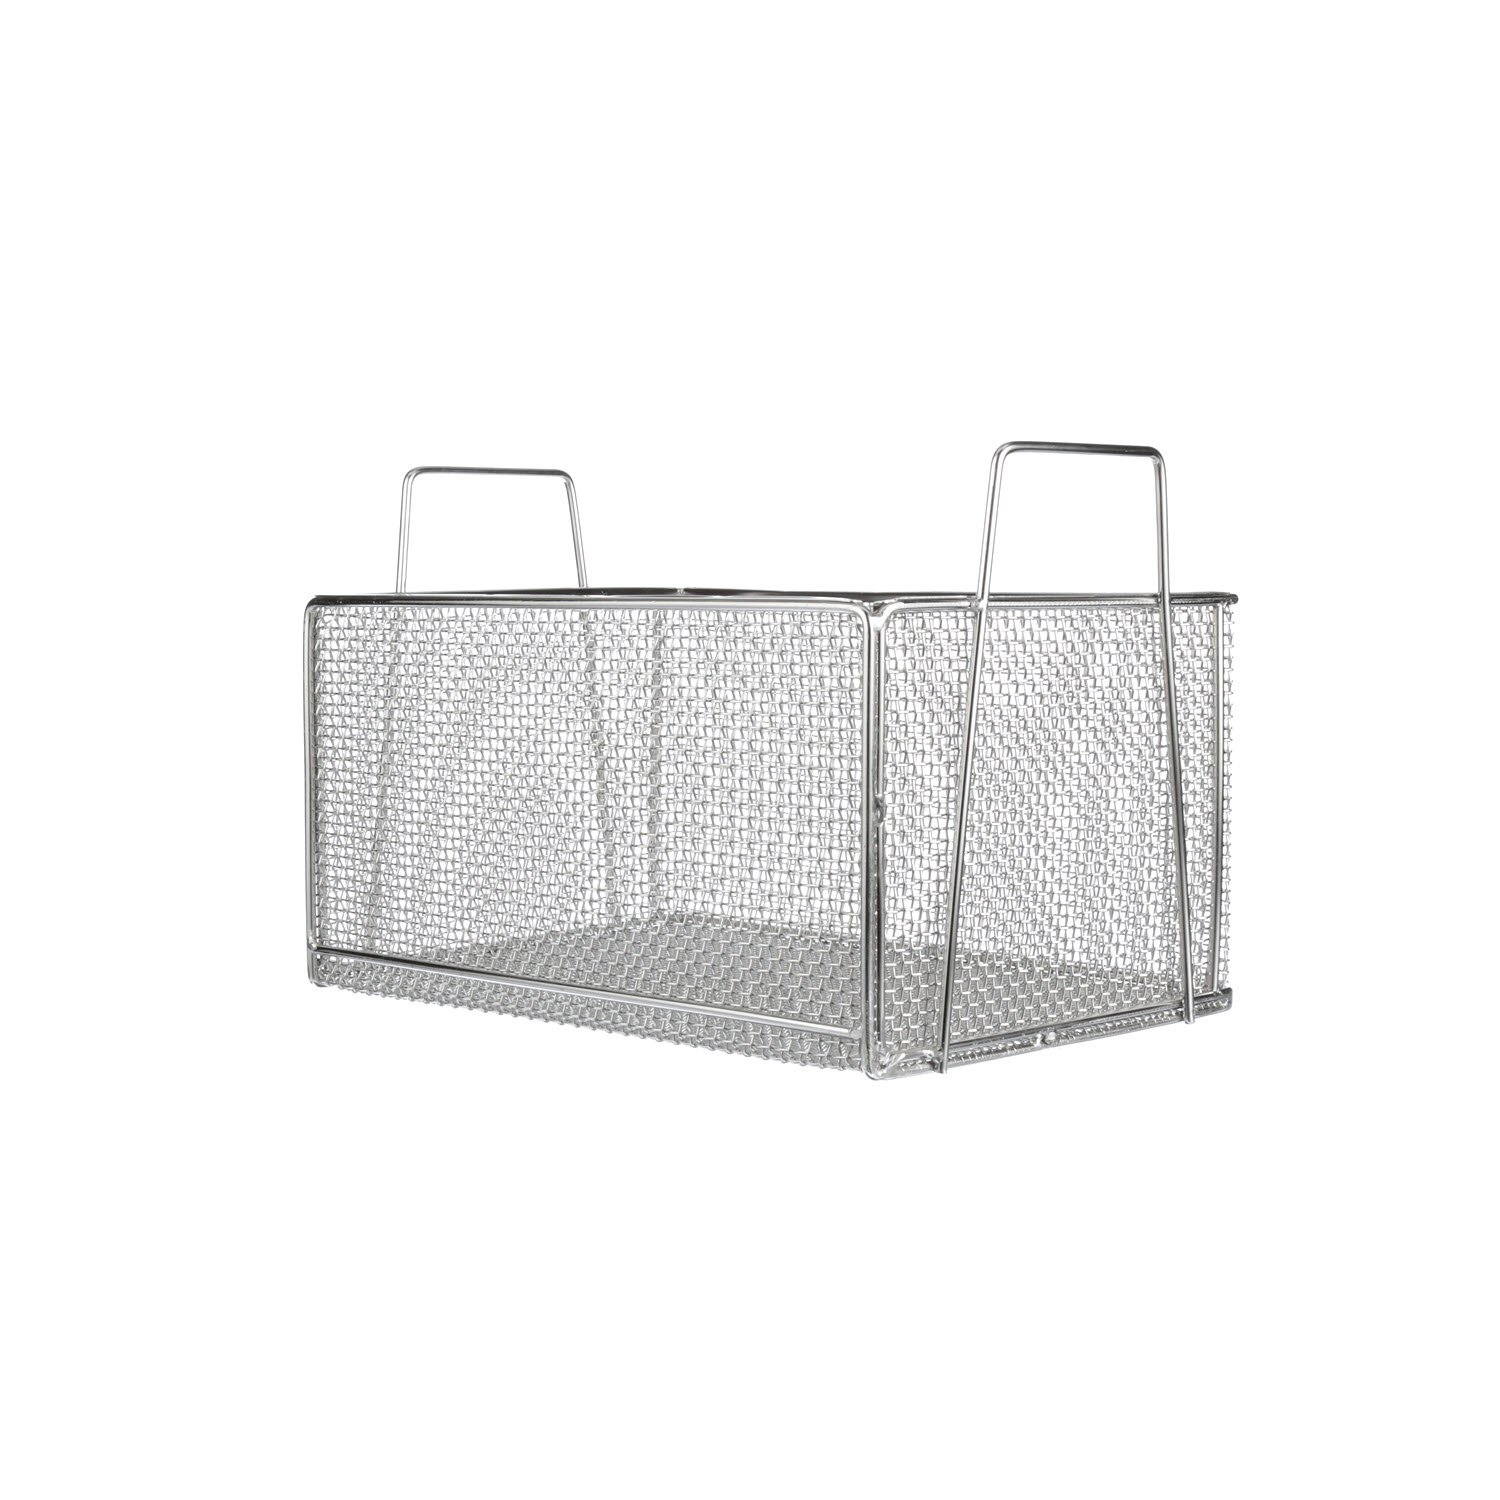 Marlin Steel 00-105A-31 Mesh Basket with Handles, Rectangular, Stainless Steel, Electropolished by Marlin Steel Wire Products